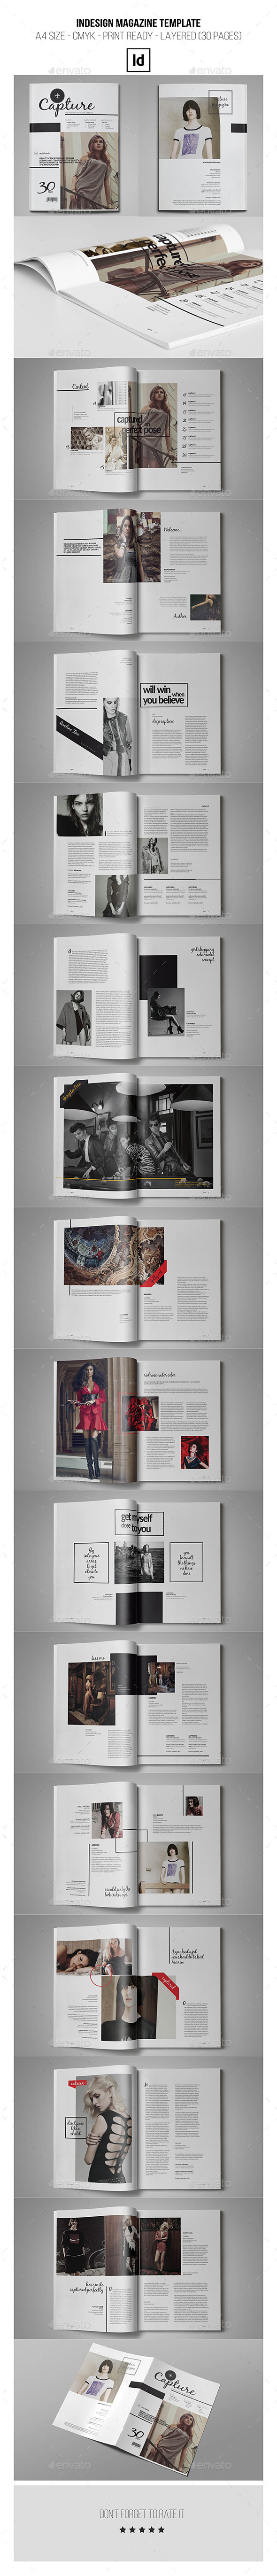 GraphicRiver InDesign Magazine Template 30 Pages 10367422